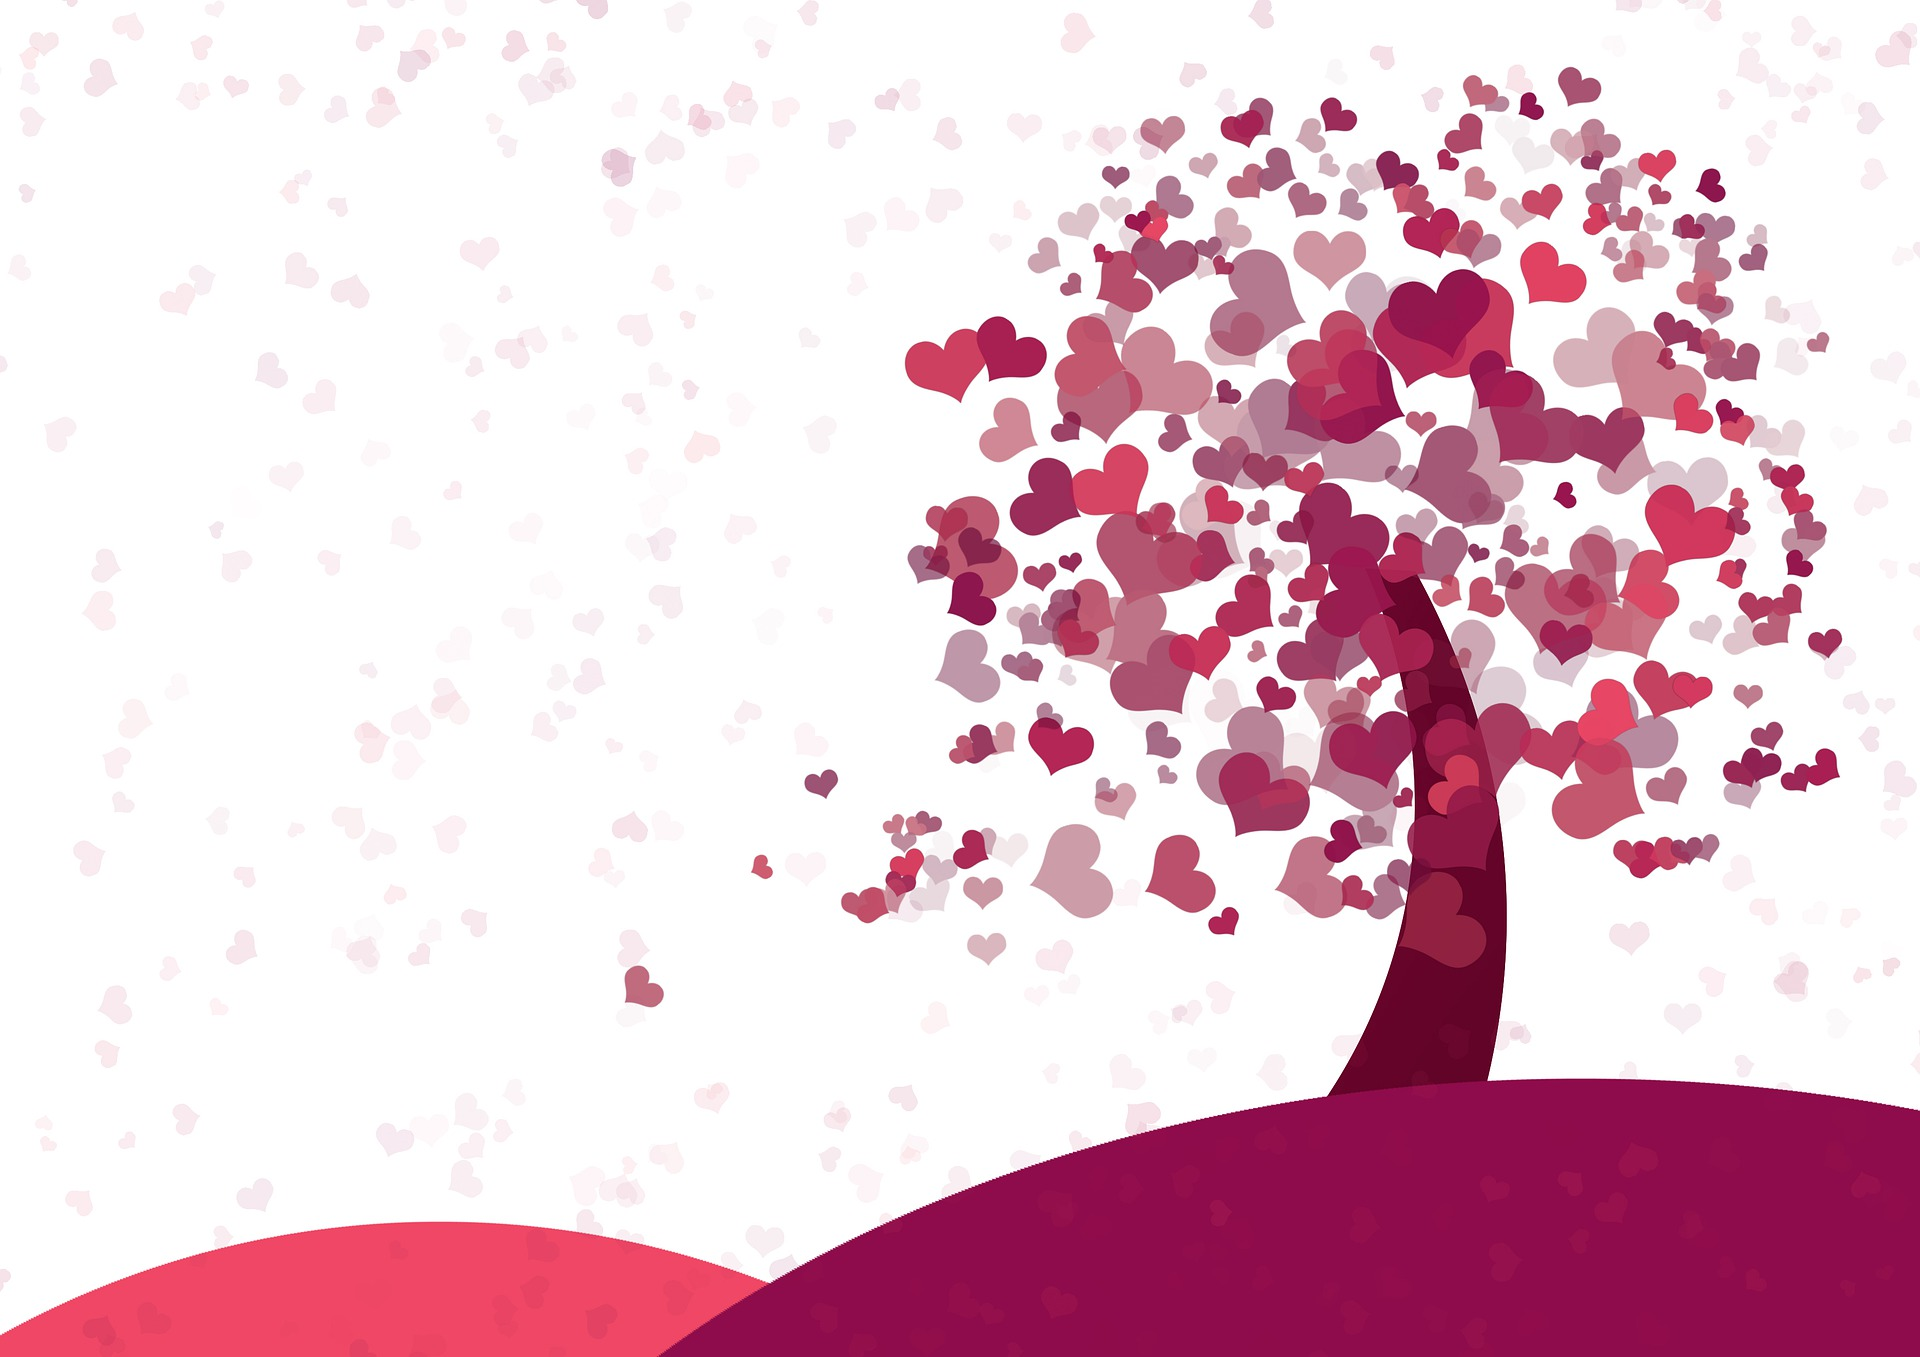 Tree with red and pink hearts as the leaves